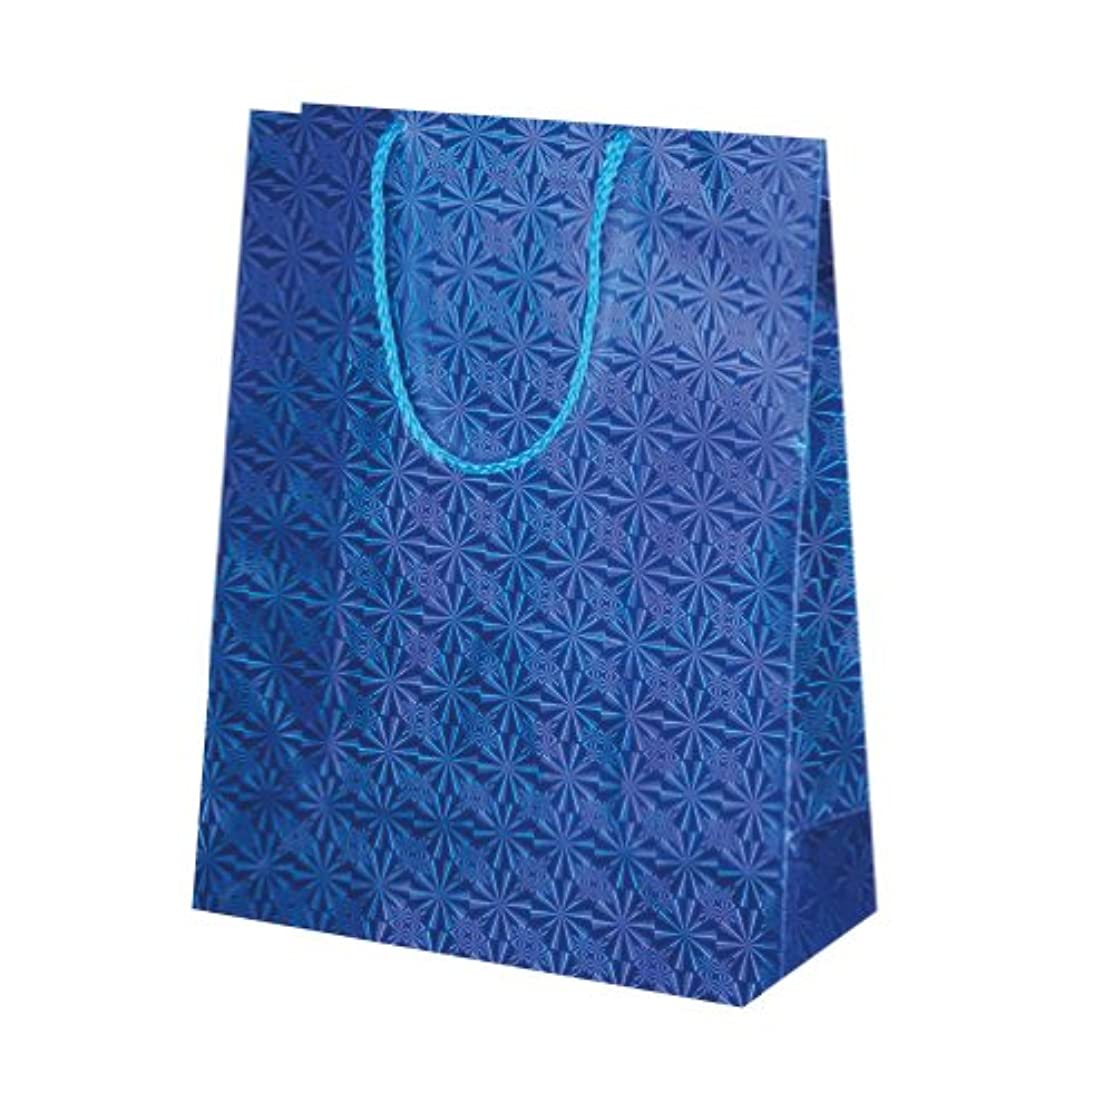 Susy Card 11277522 Gift Bag with Holographic Paper Pack of 10 Blue